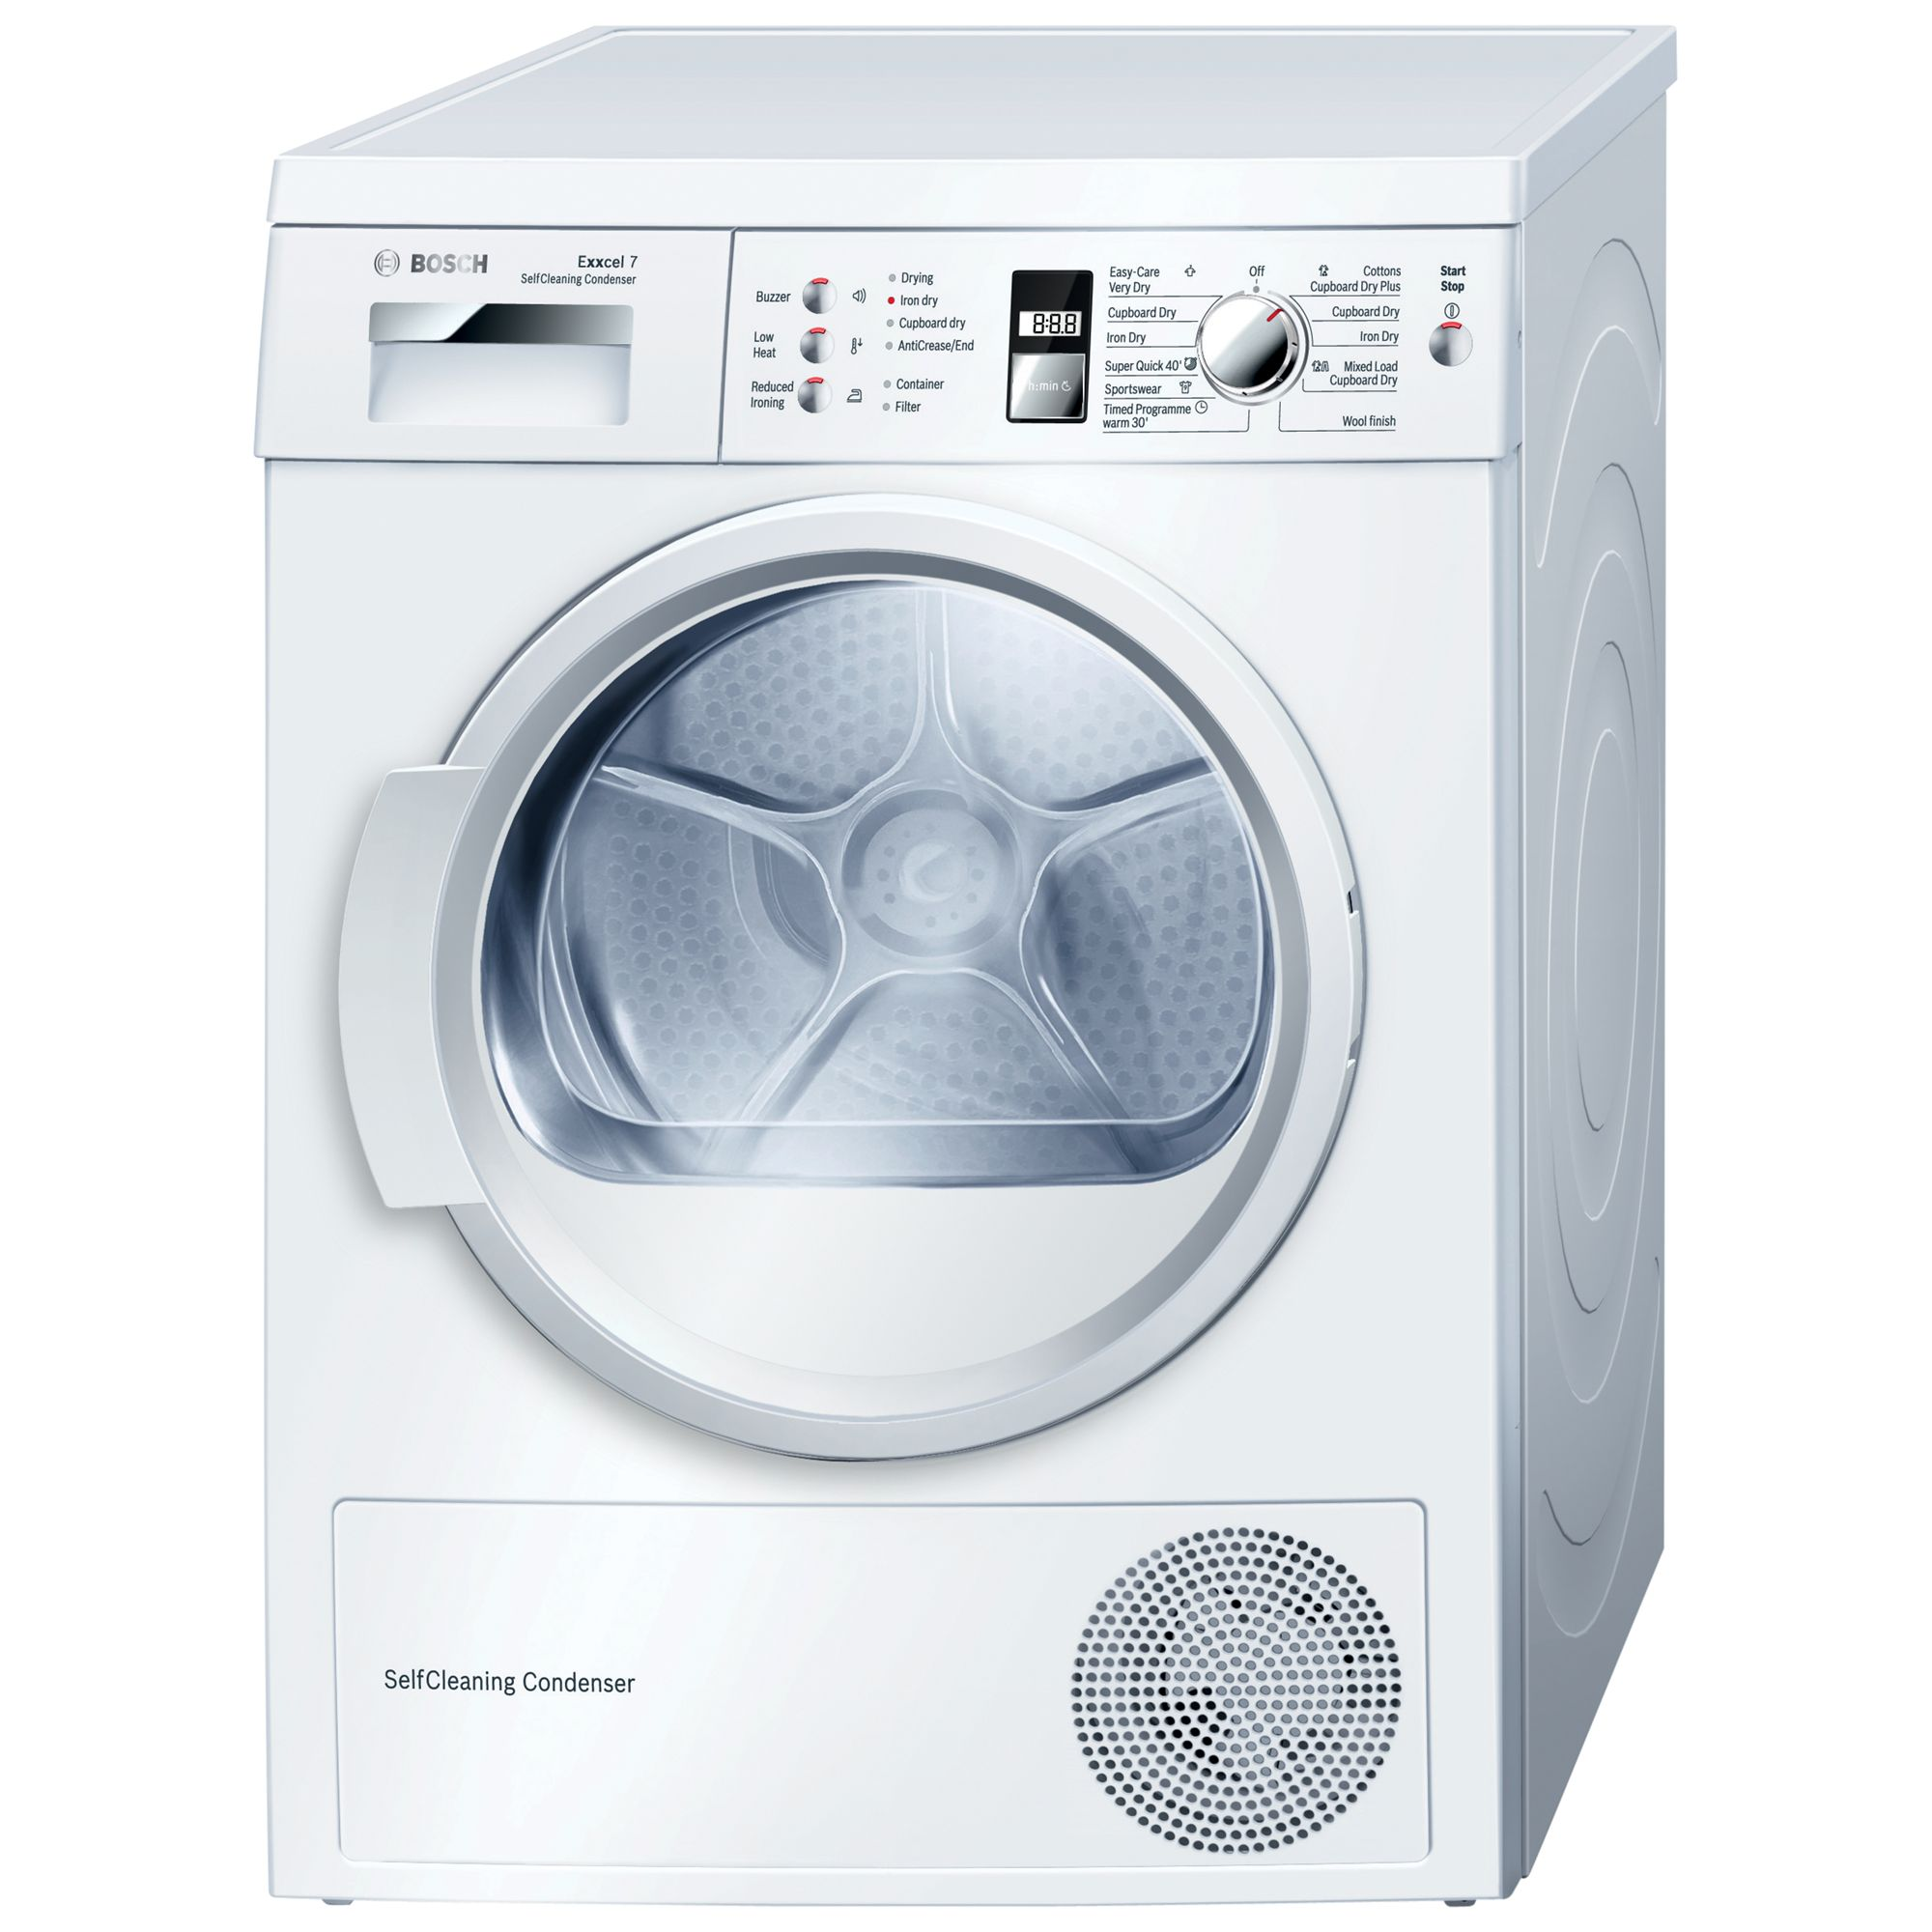 Component Tumble Dryer ~ Buy cheap tumble dryer bosch compare dryers